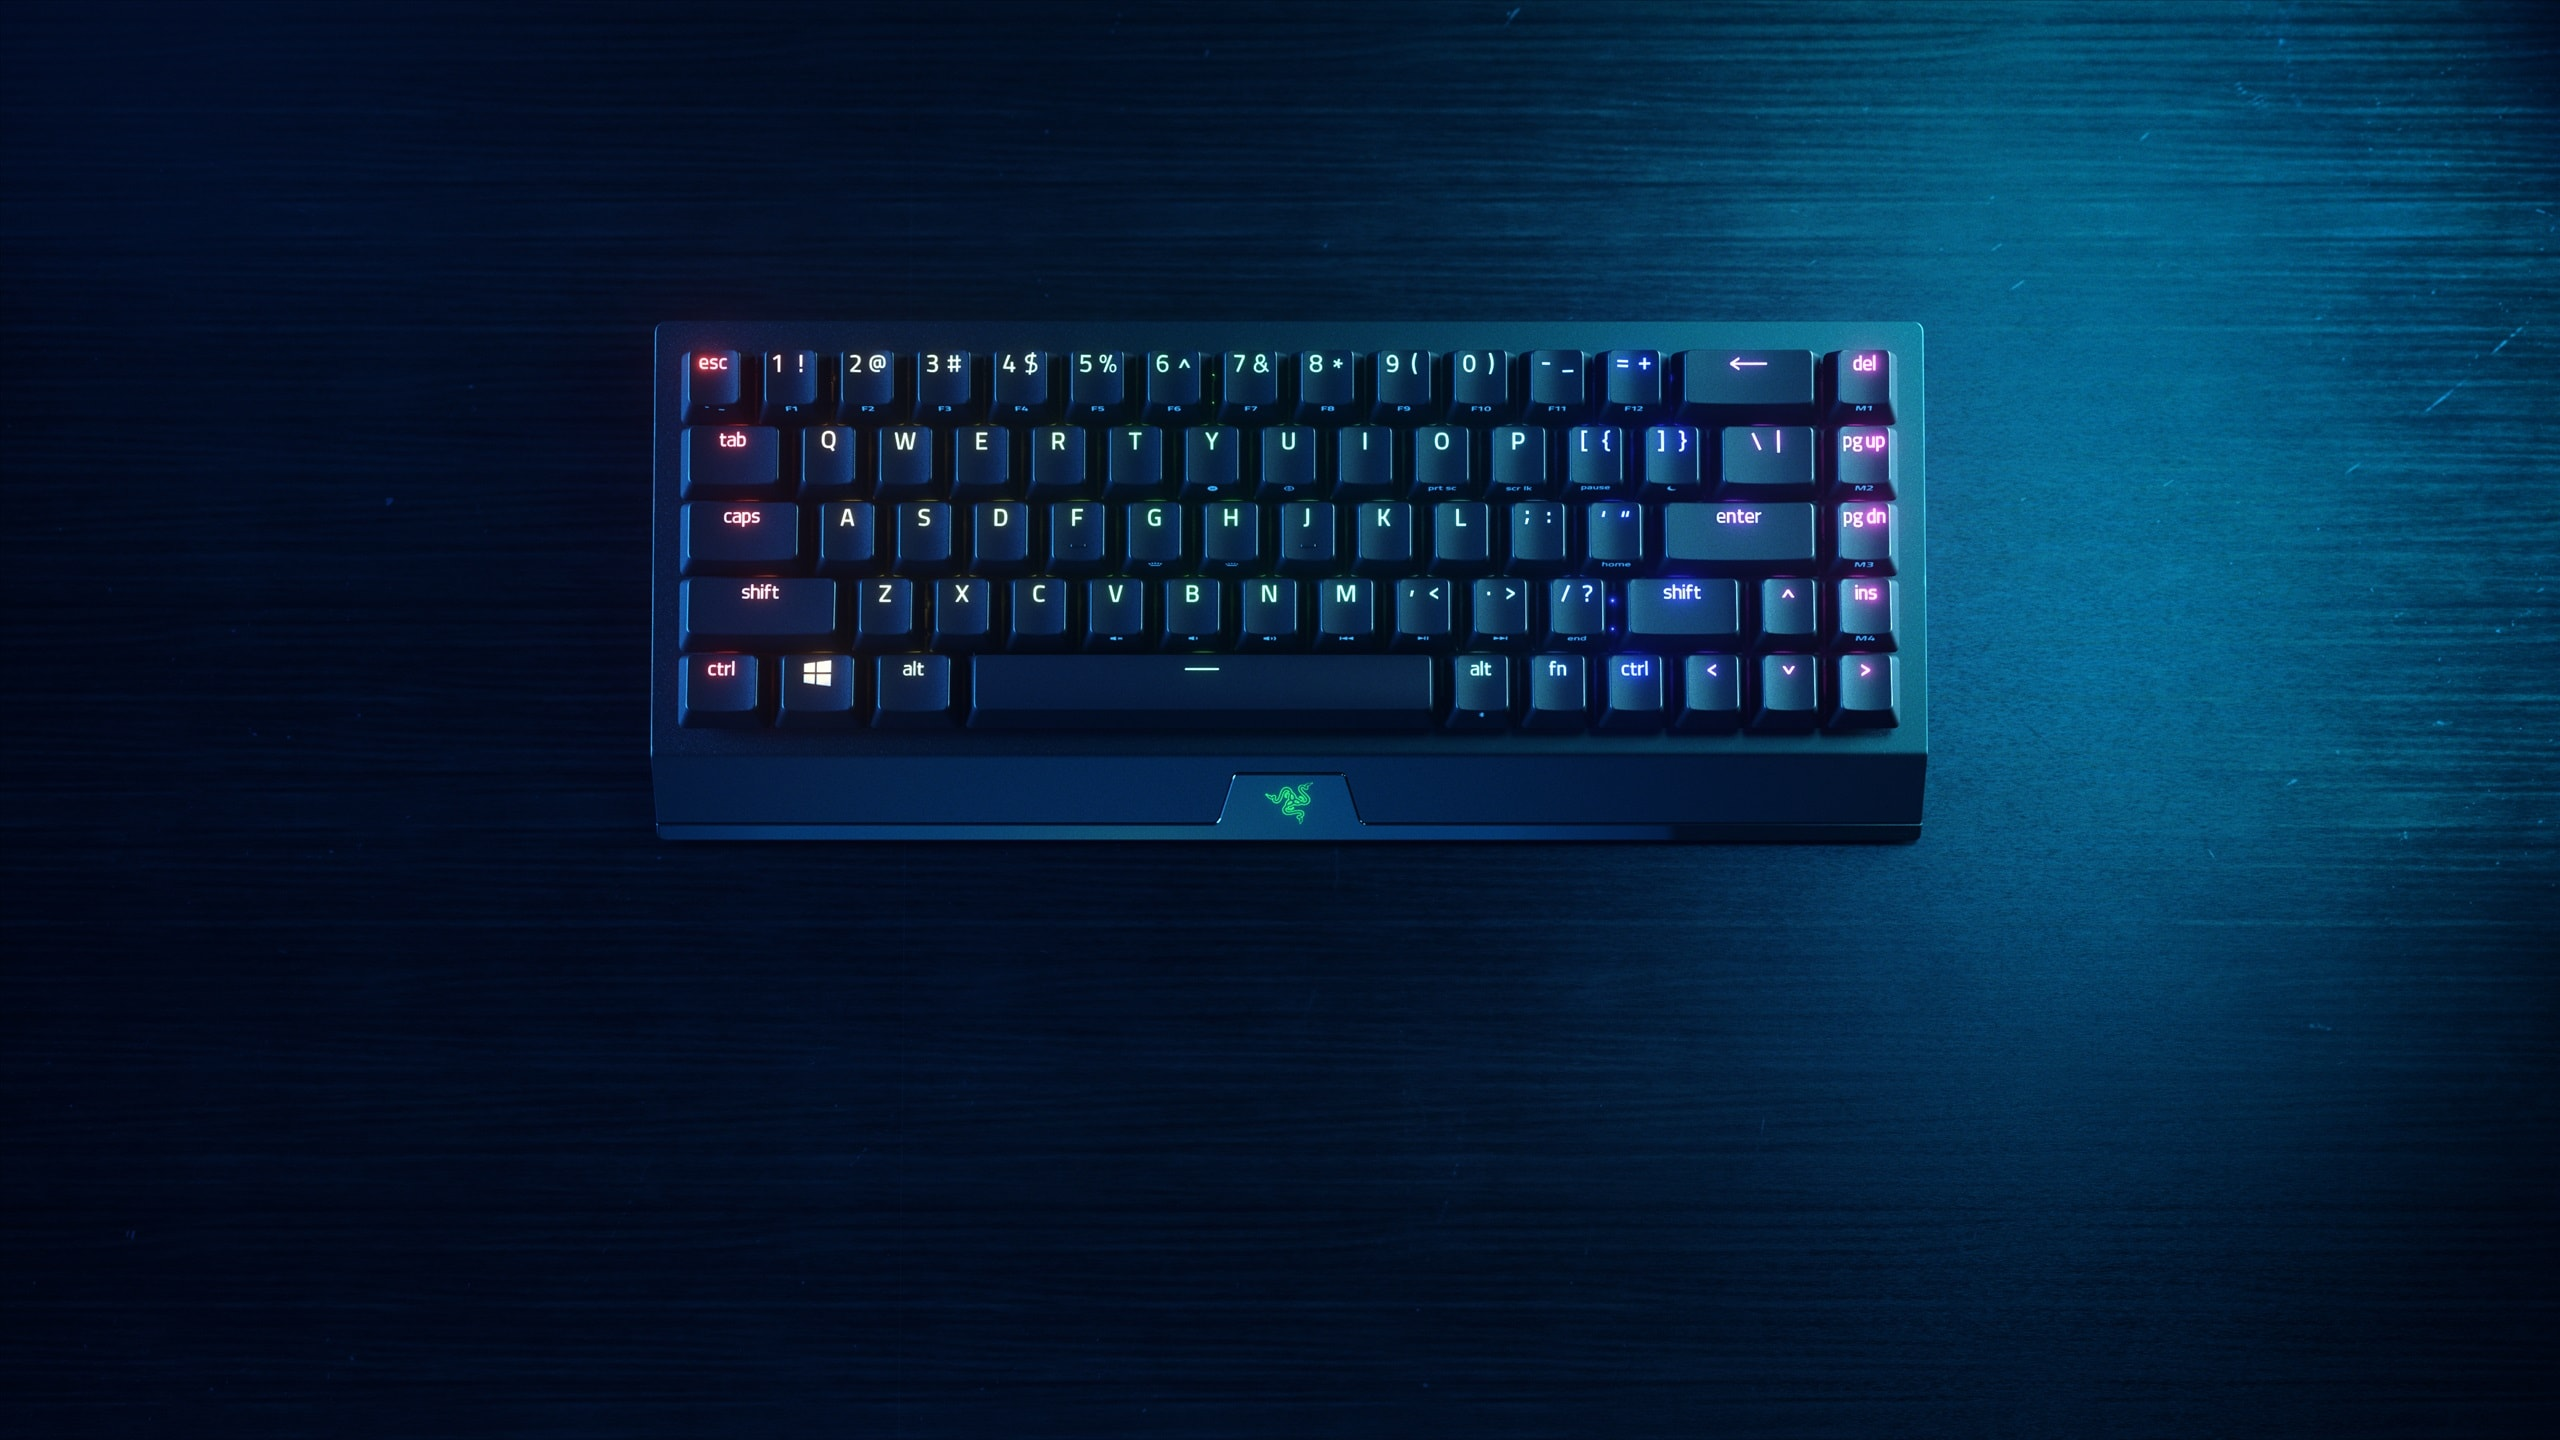 Razer BlackWidow V3 Mini HyperSpeed keyboard is that Razer compact, wireless gaming keyboard you are looking for